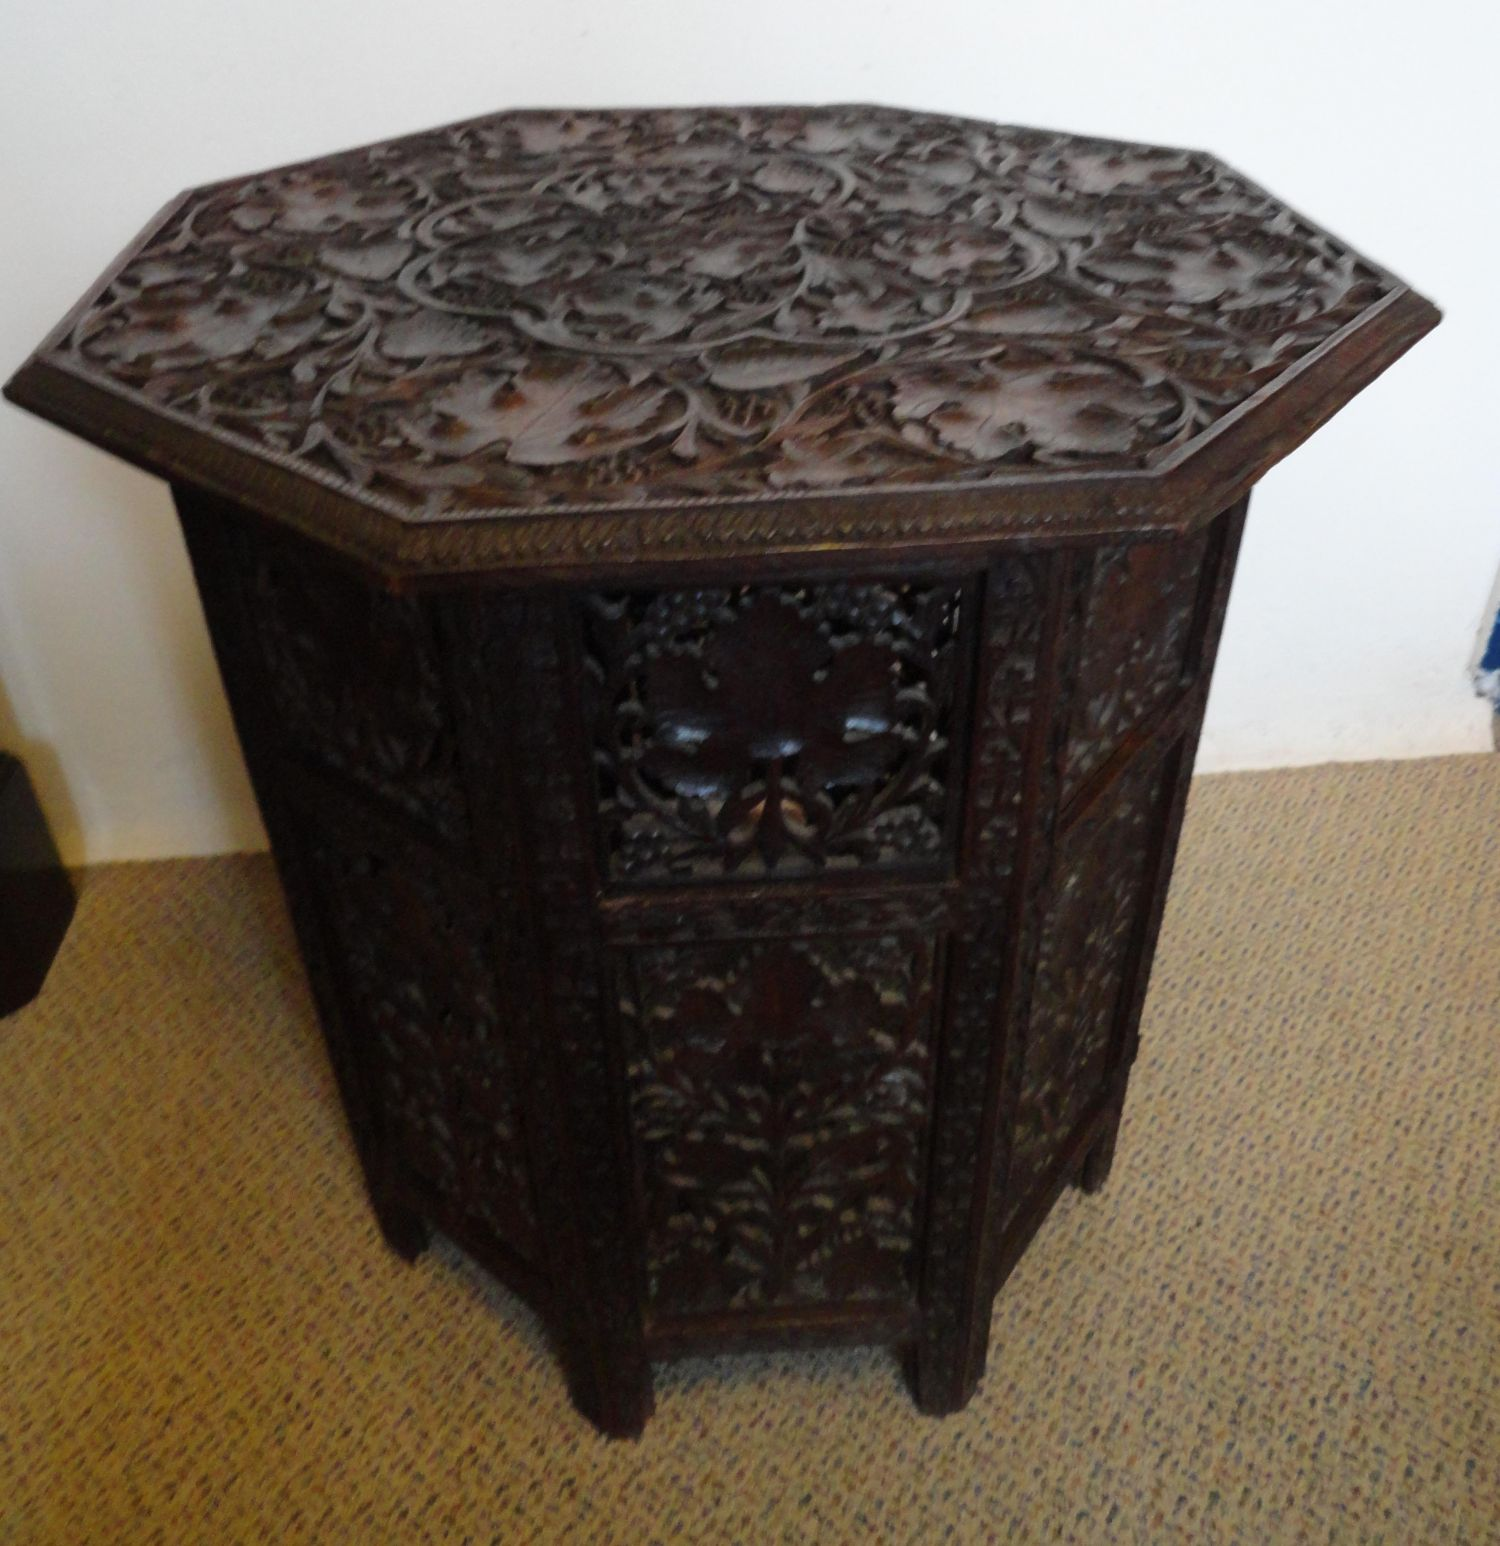 Indian Wooden Folding Hexagonal Table Antique Tables Hemswell Antique Centres